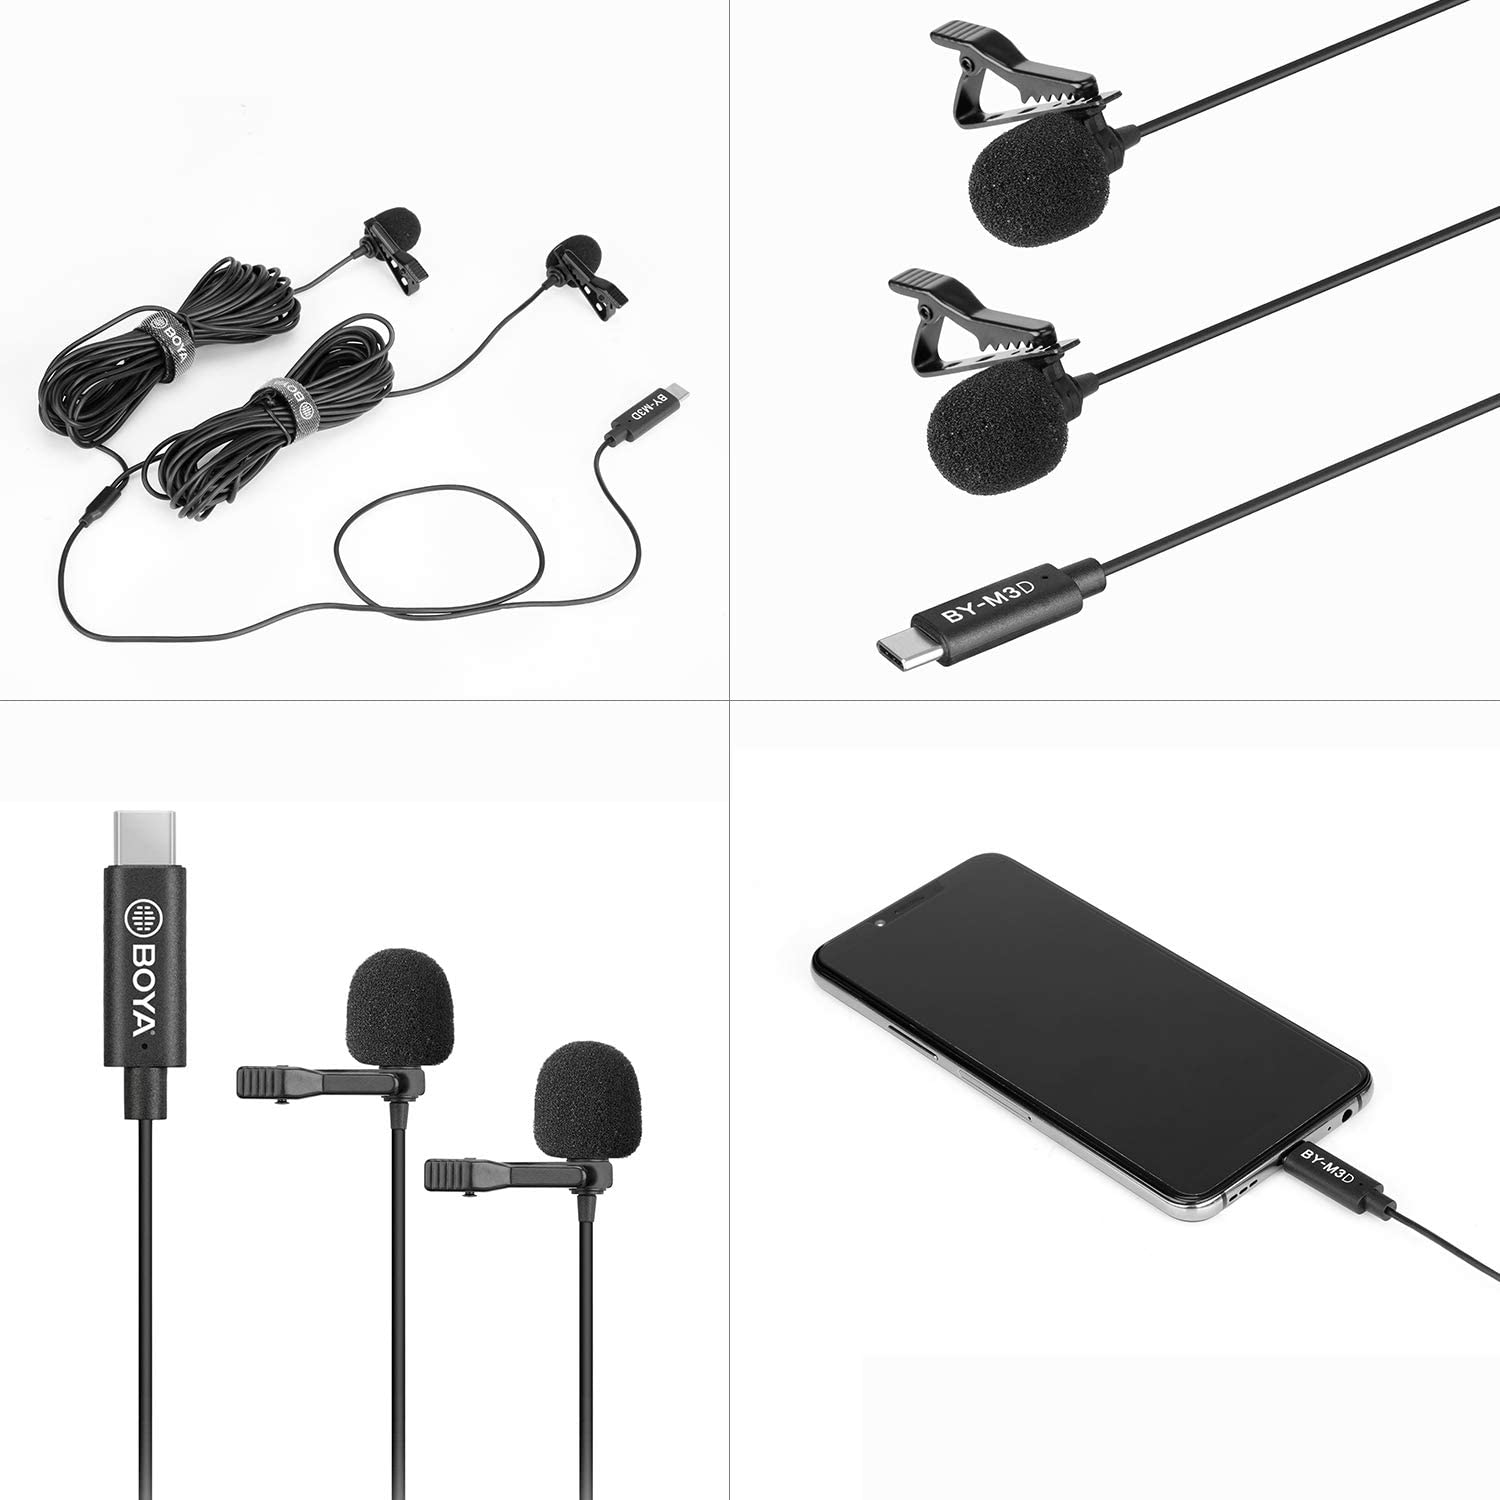 Amazon.com: BOYA BY-M3D Digital Dual-Head USB Type-C Lavalier Microphones  Compatible with iPad Pro, Mac PC, Samsung Android Devices: Musical  Instruments